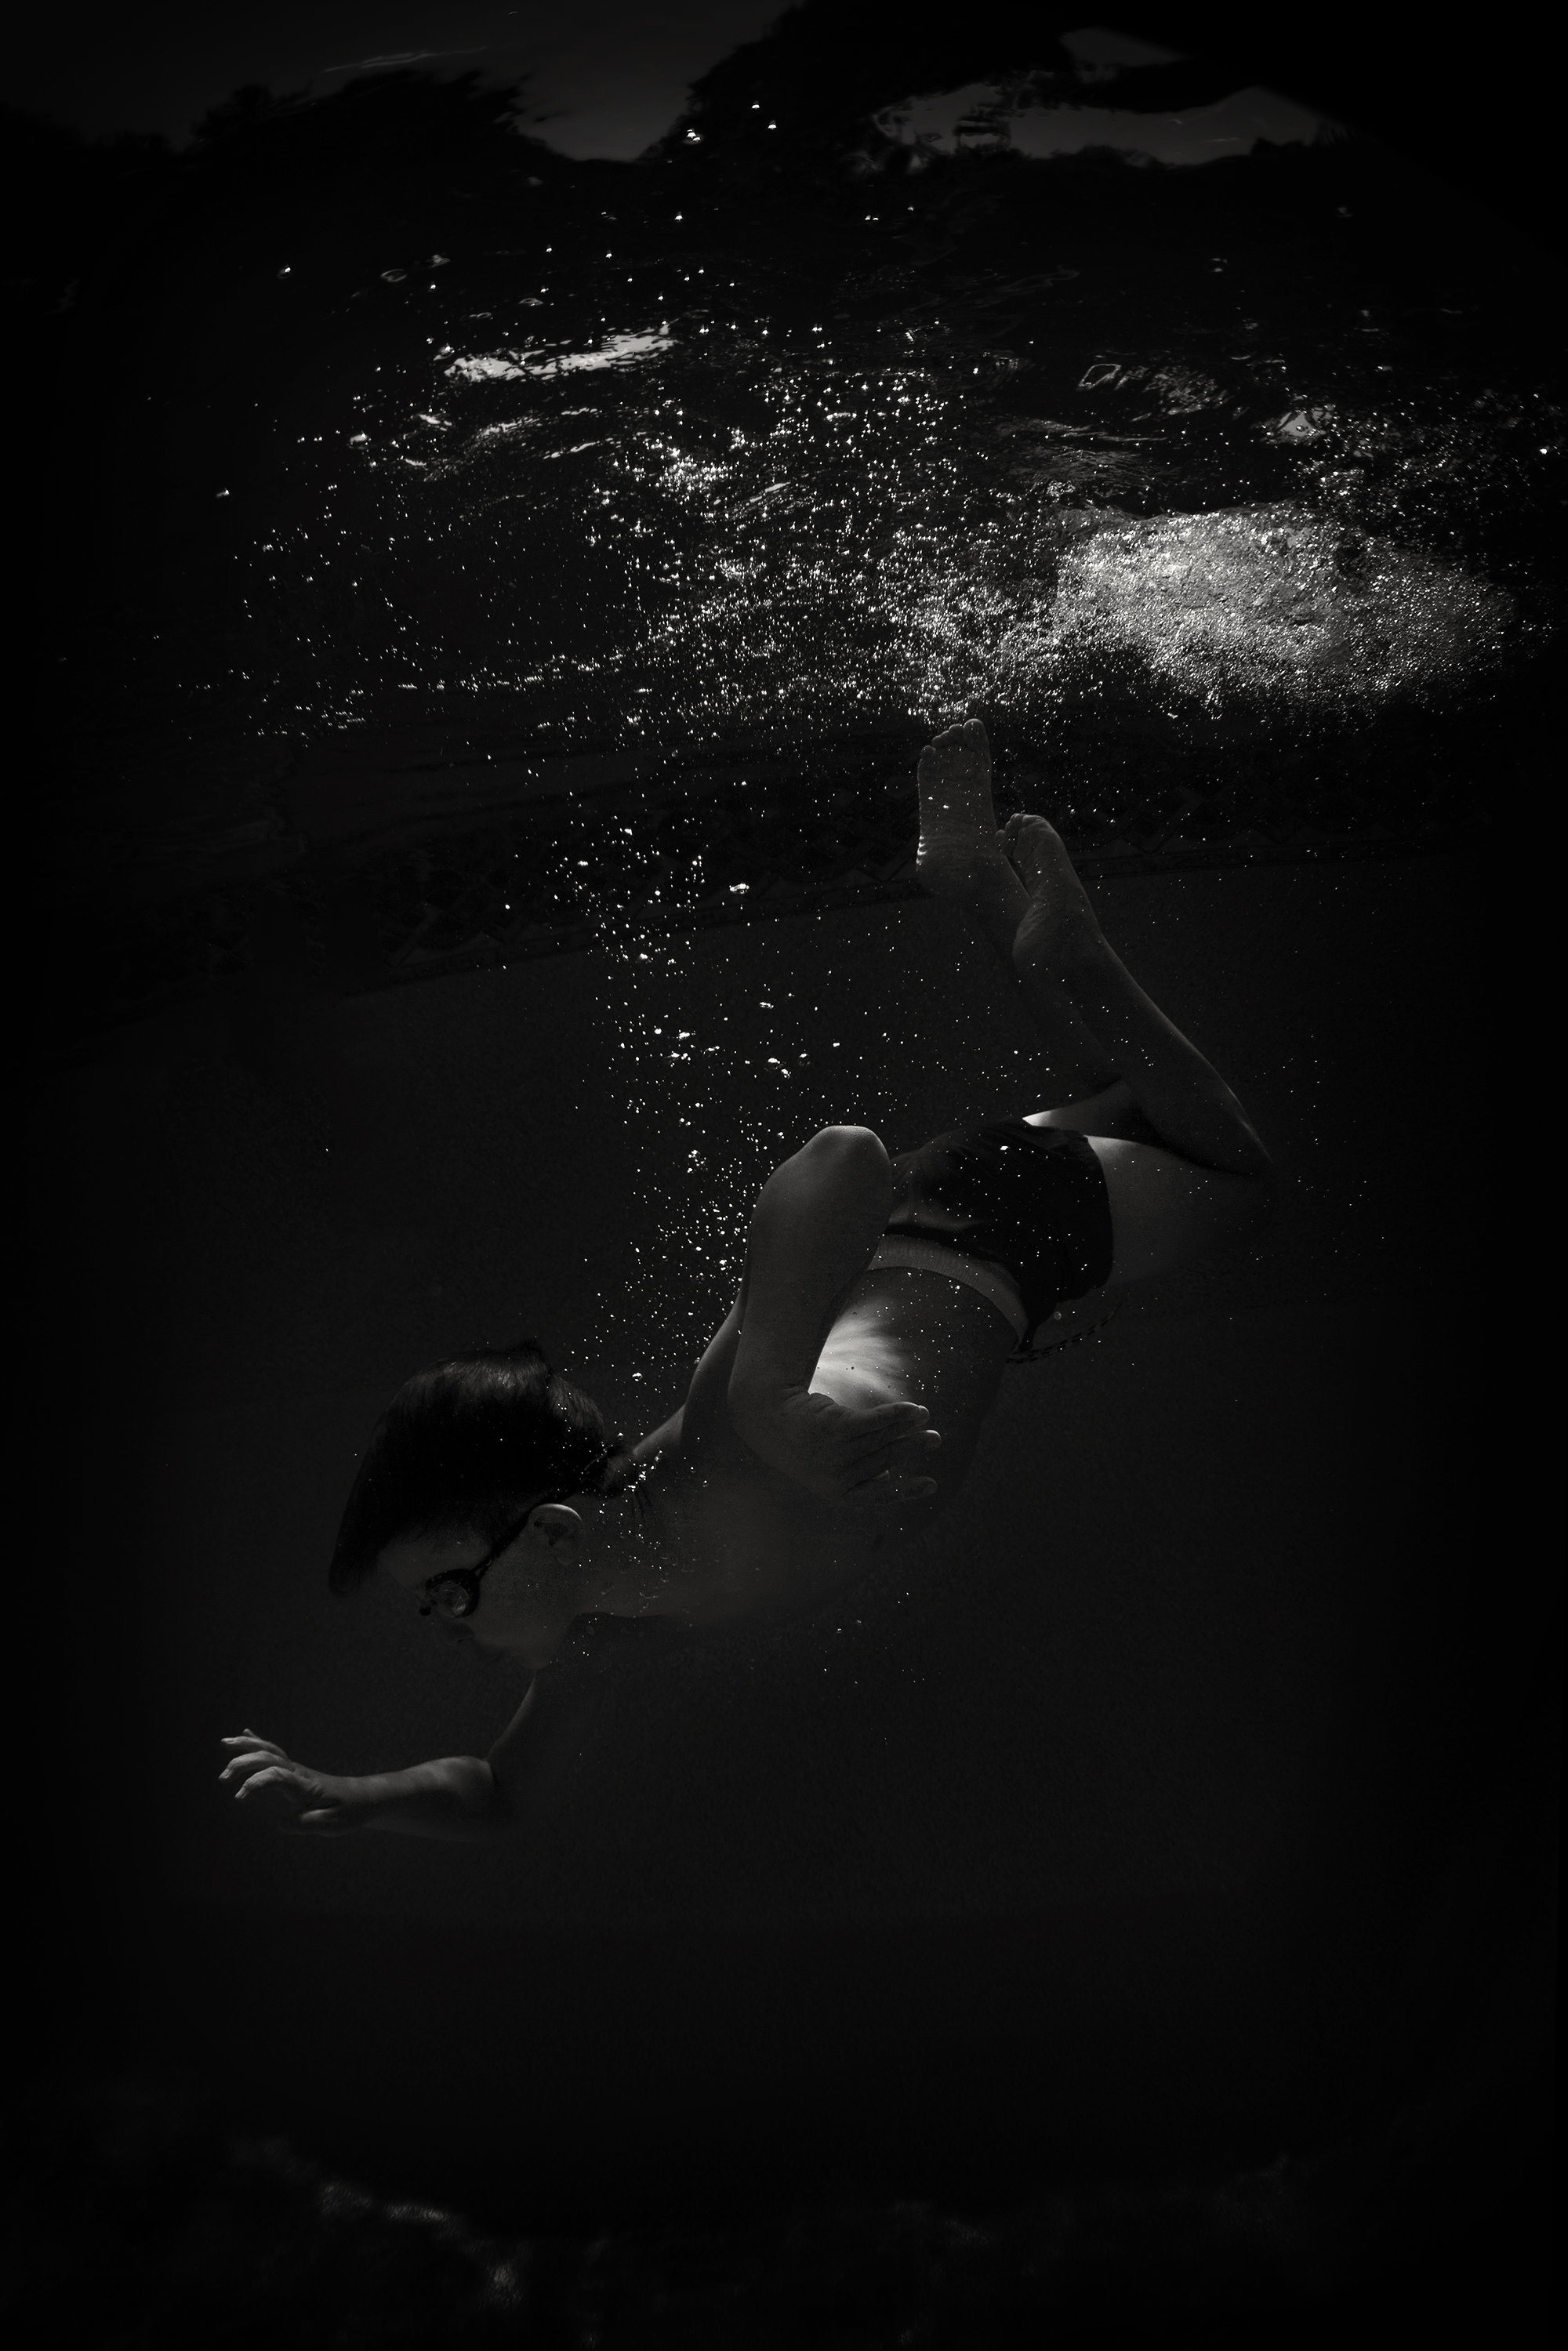 Underwater Photography in Jonesboro, AR